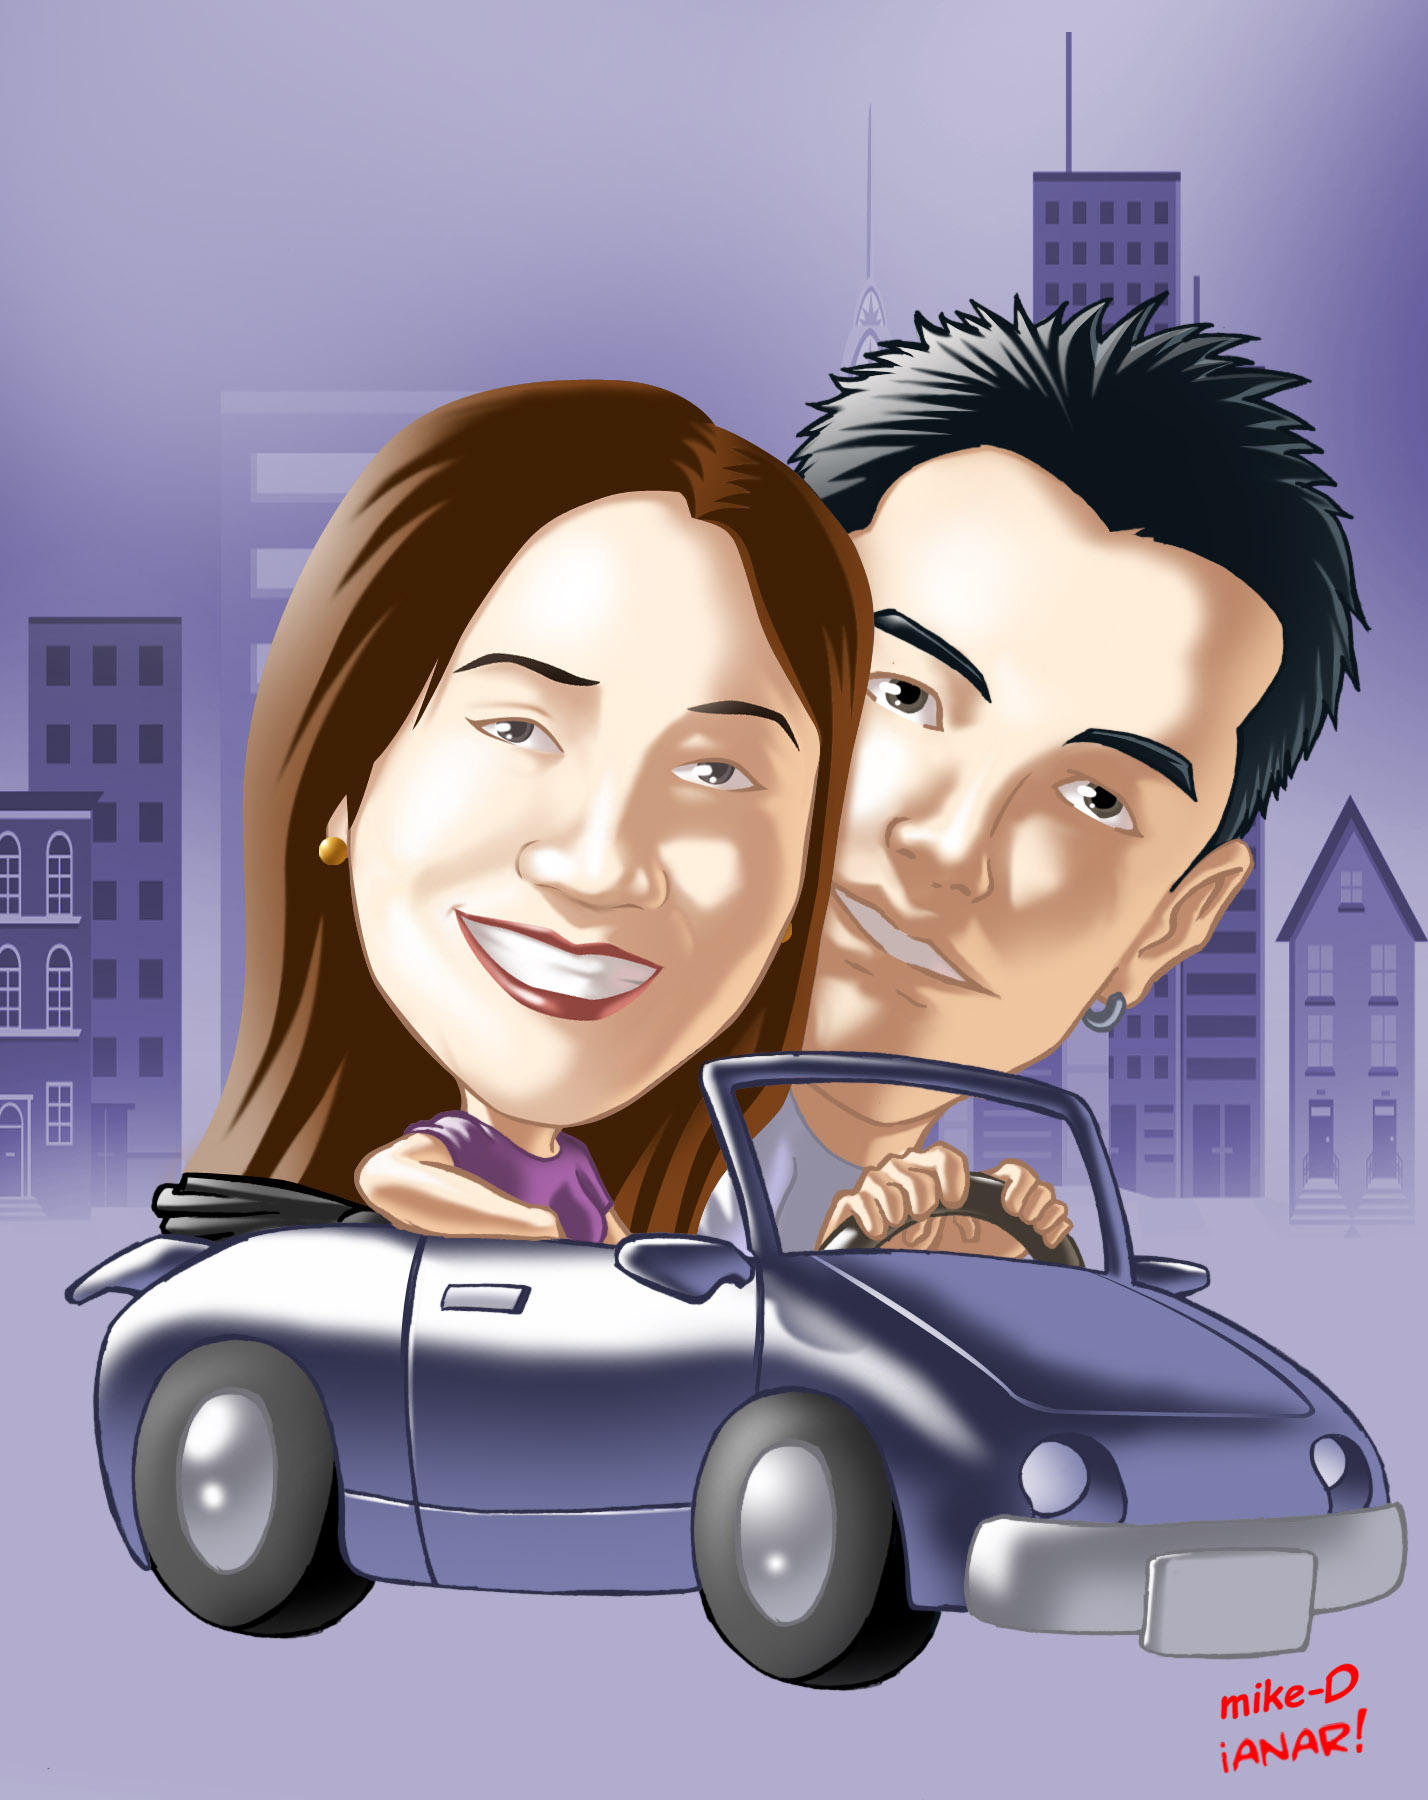 Carla and BF caricature by iANAR